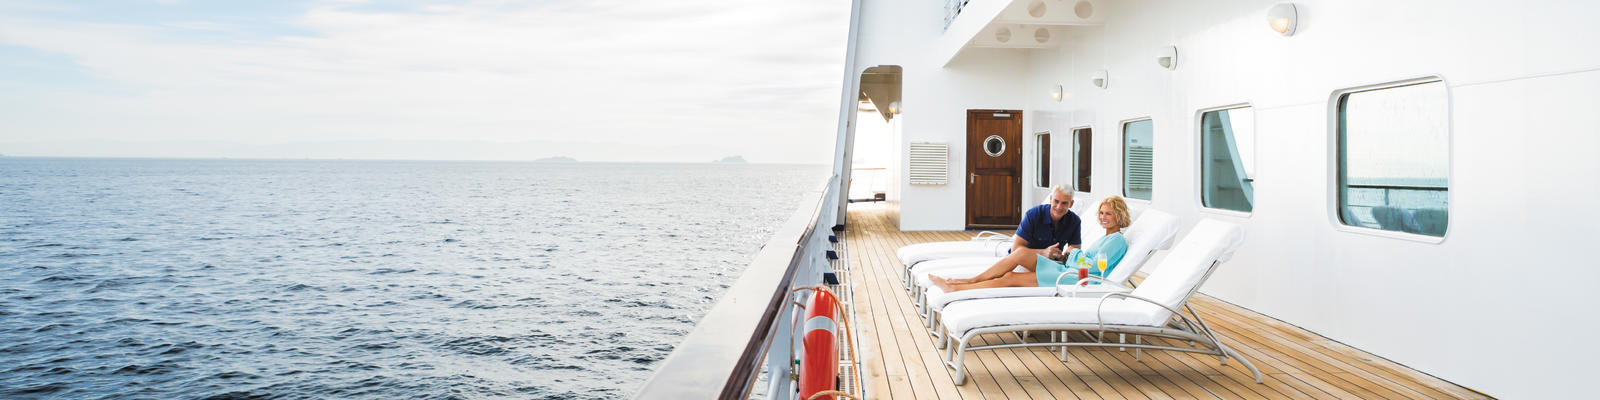 Best Luxury Cruise Lines for Couples (Photo: Regent Seven Seas Cruises)